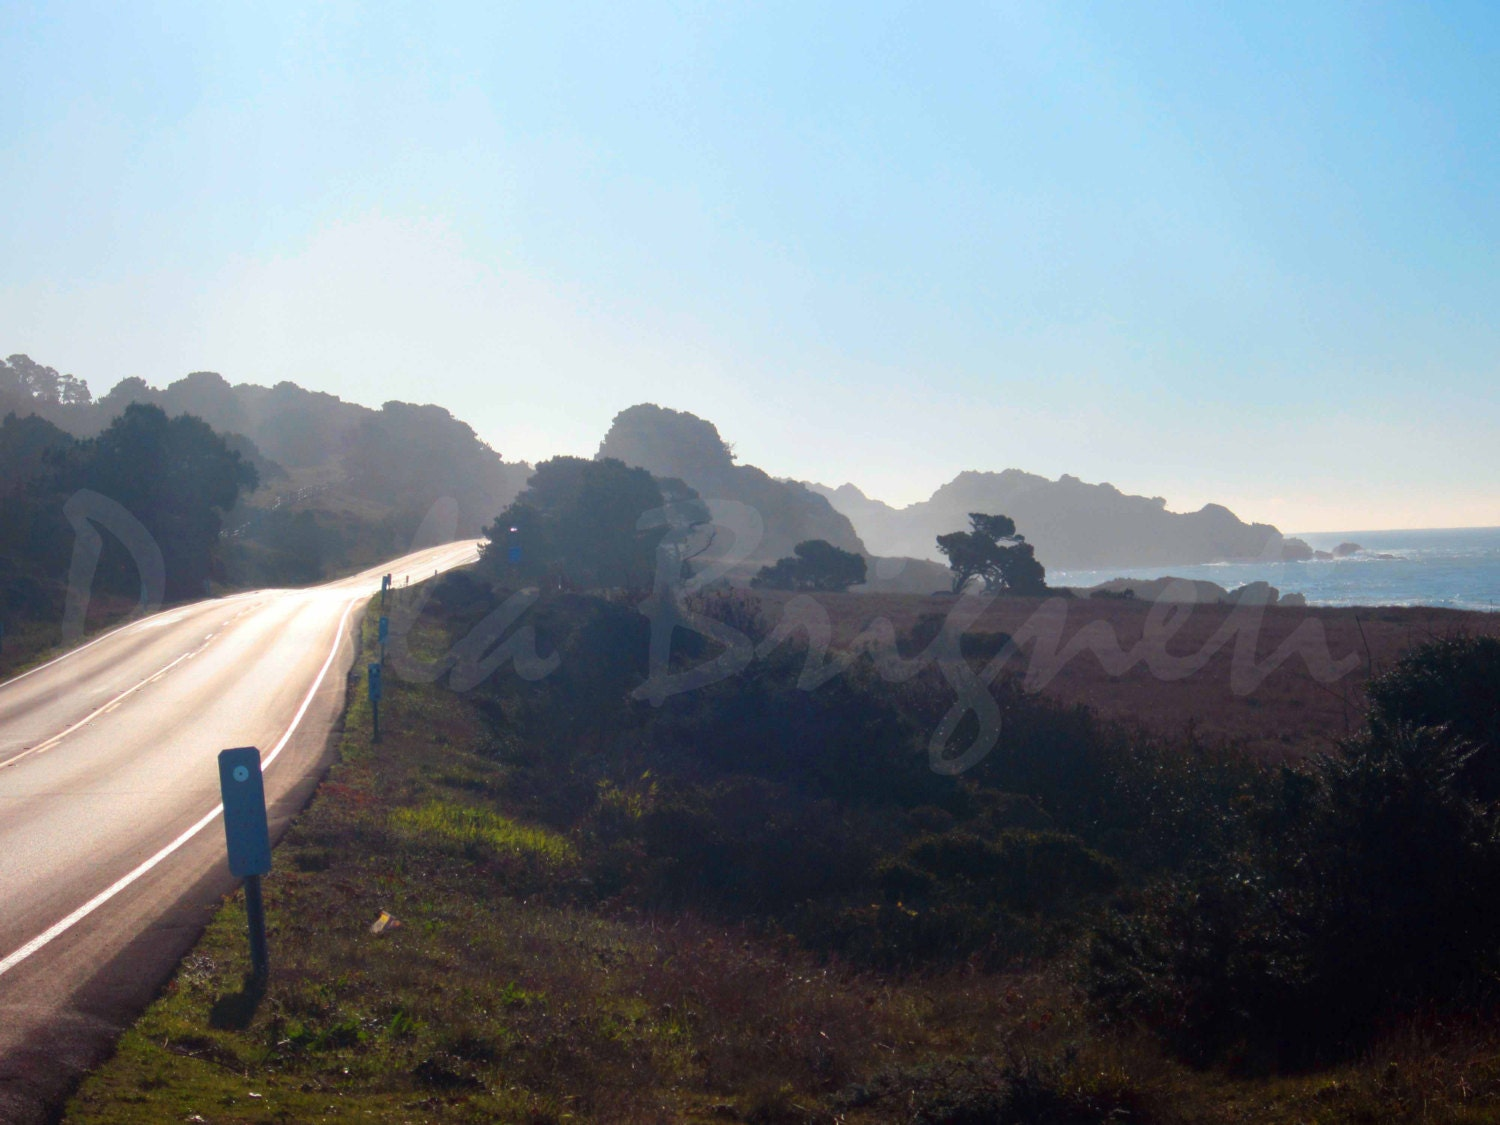 Highway 1 in the Early Morning - Road to Happiness - California - WorldPhotosByPaola